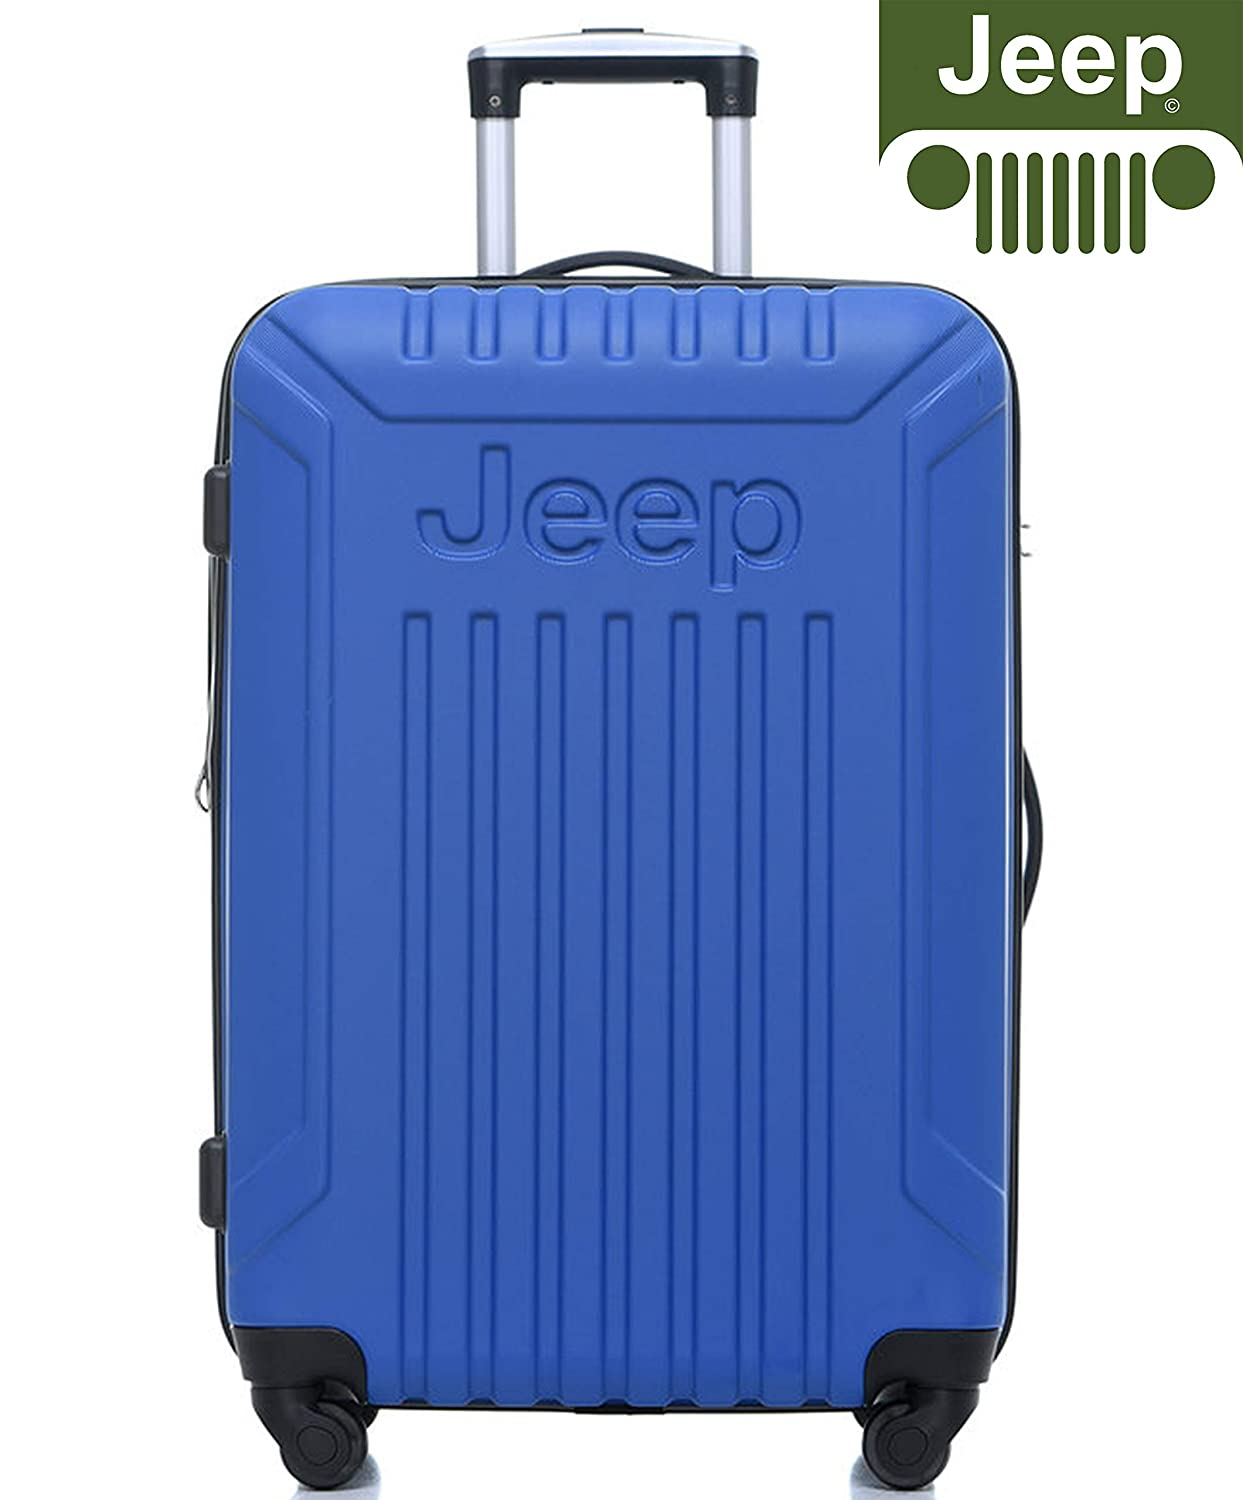 da3a59fb428 Jeep Luggage Missouri 2019 Hard Case 3 Piece Suitcase Travel Trolley  Tourist Bag with Spinner Wheels Luggage Sets (Black) (20